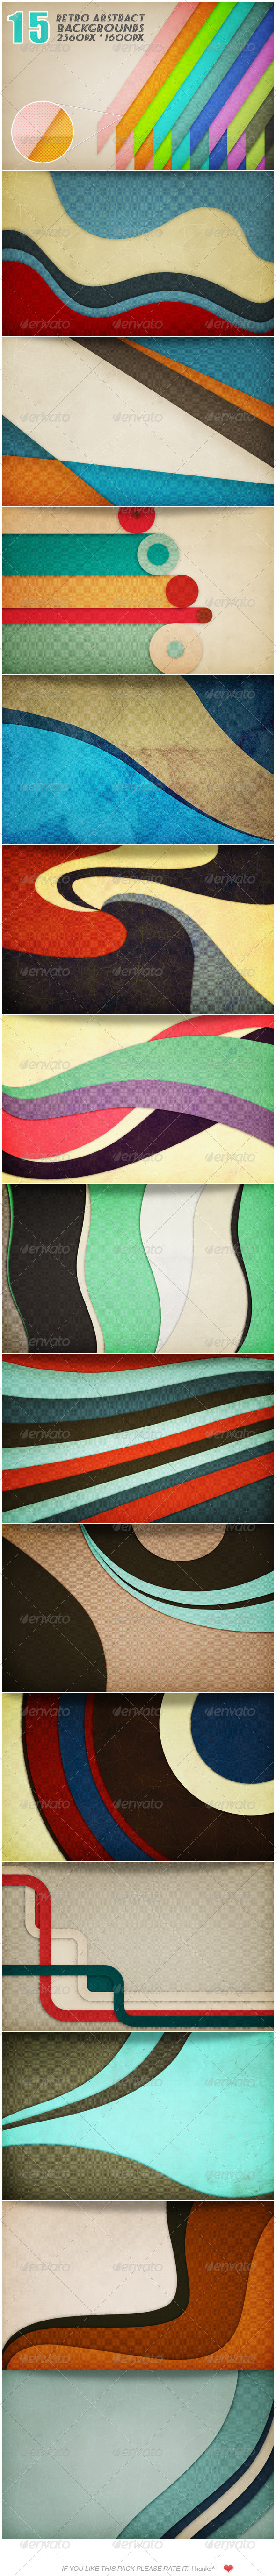 15 Retro Graphic Backgrounds - Abstract Backgrounds